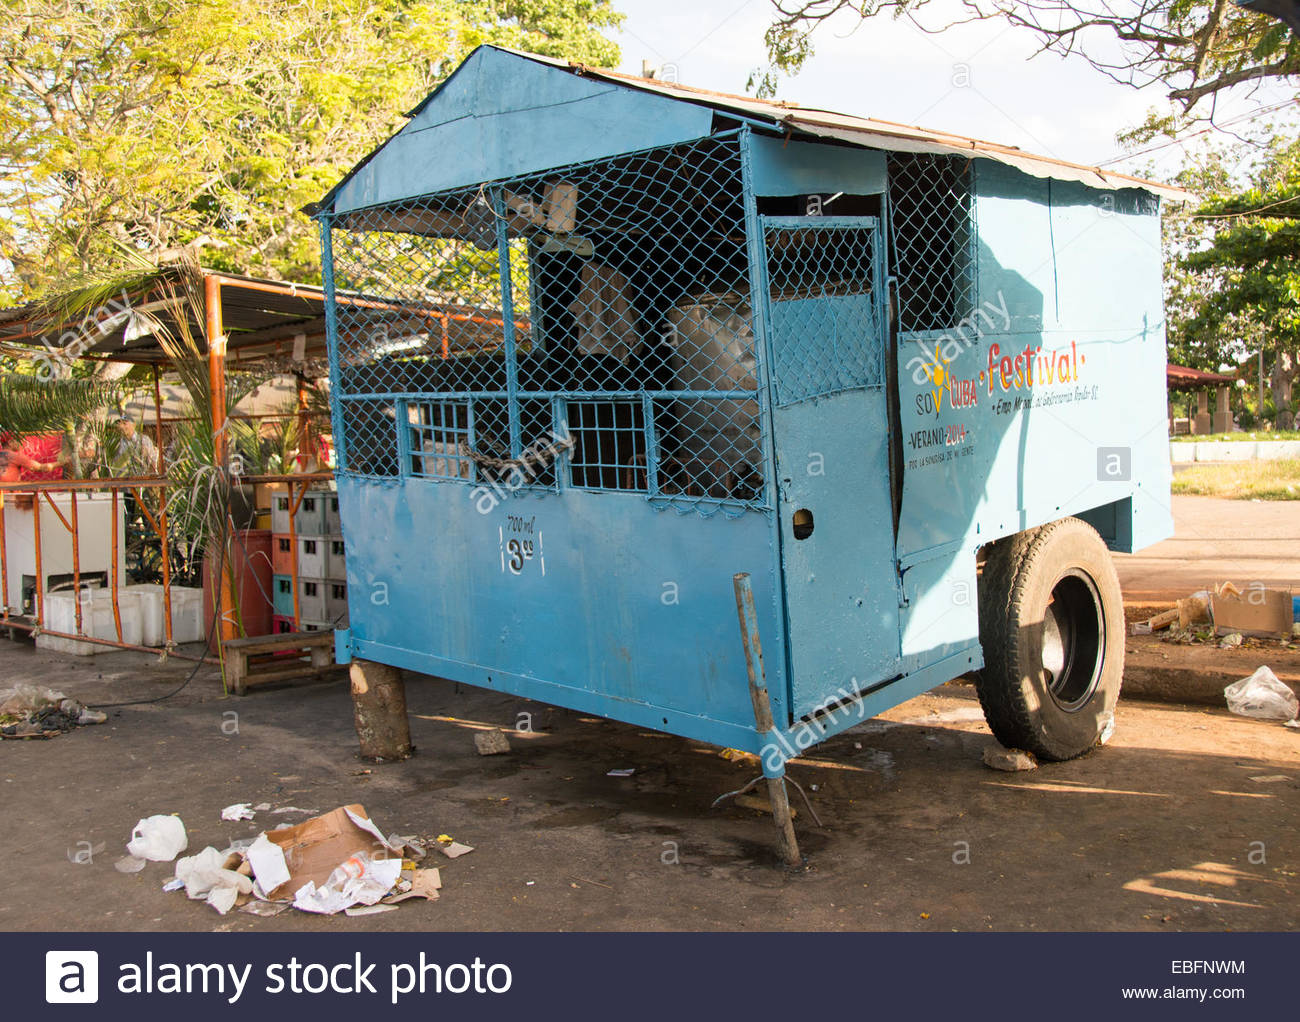 Draft beer car used in Cuban carnivals for selling the refreshing drink to partying people - Stock Image